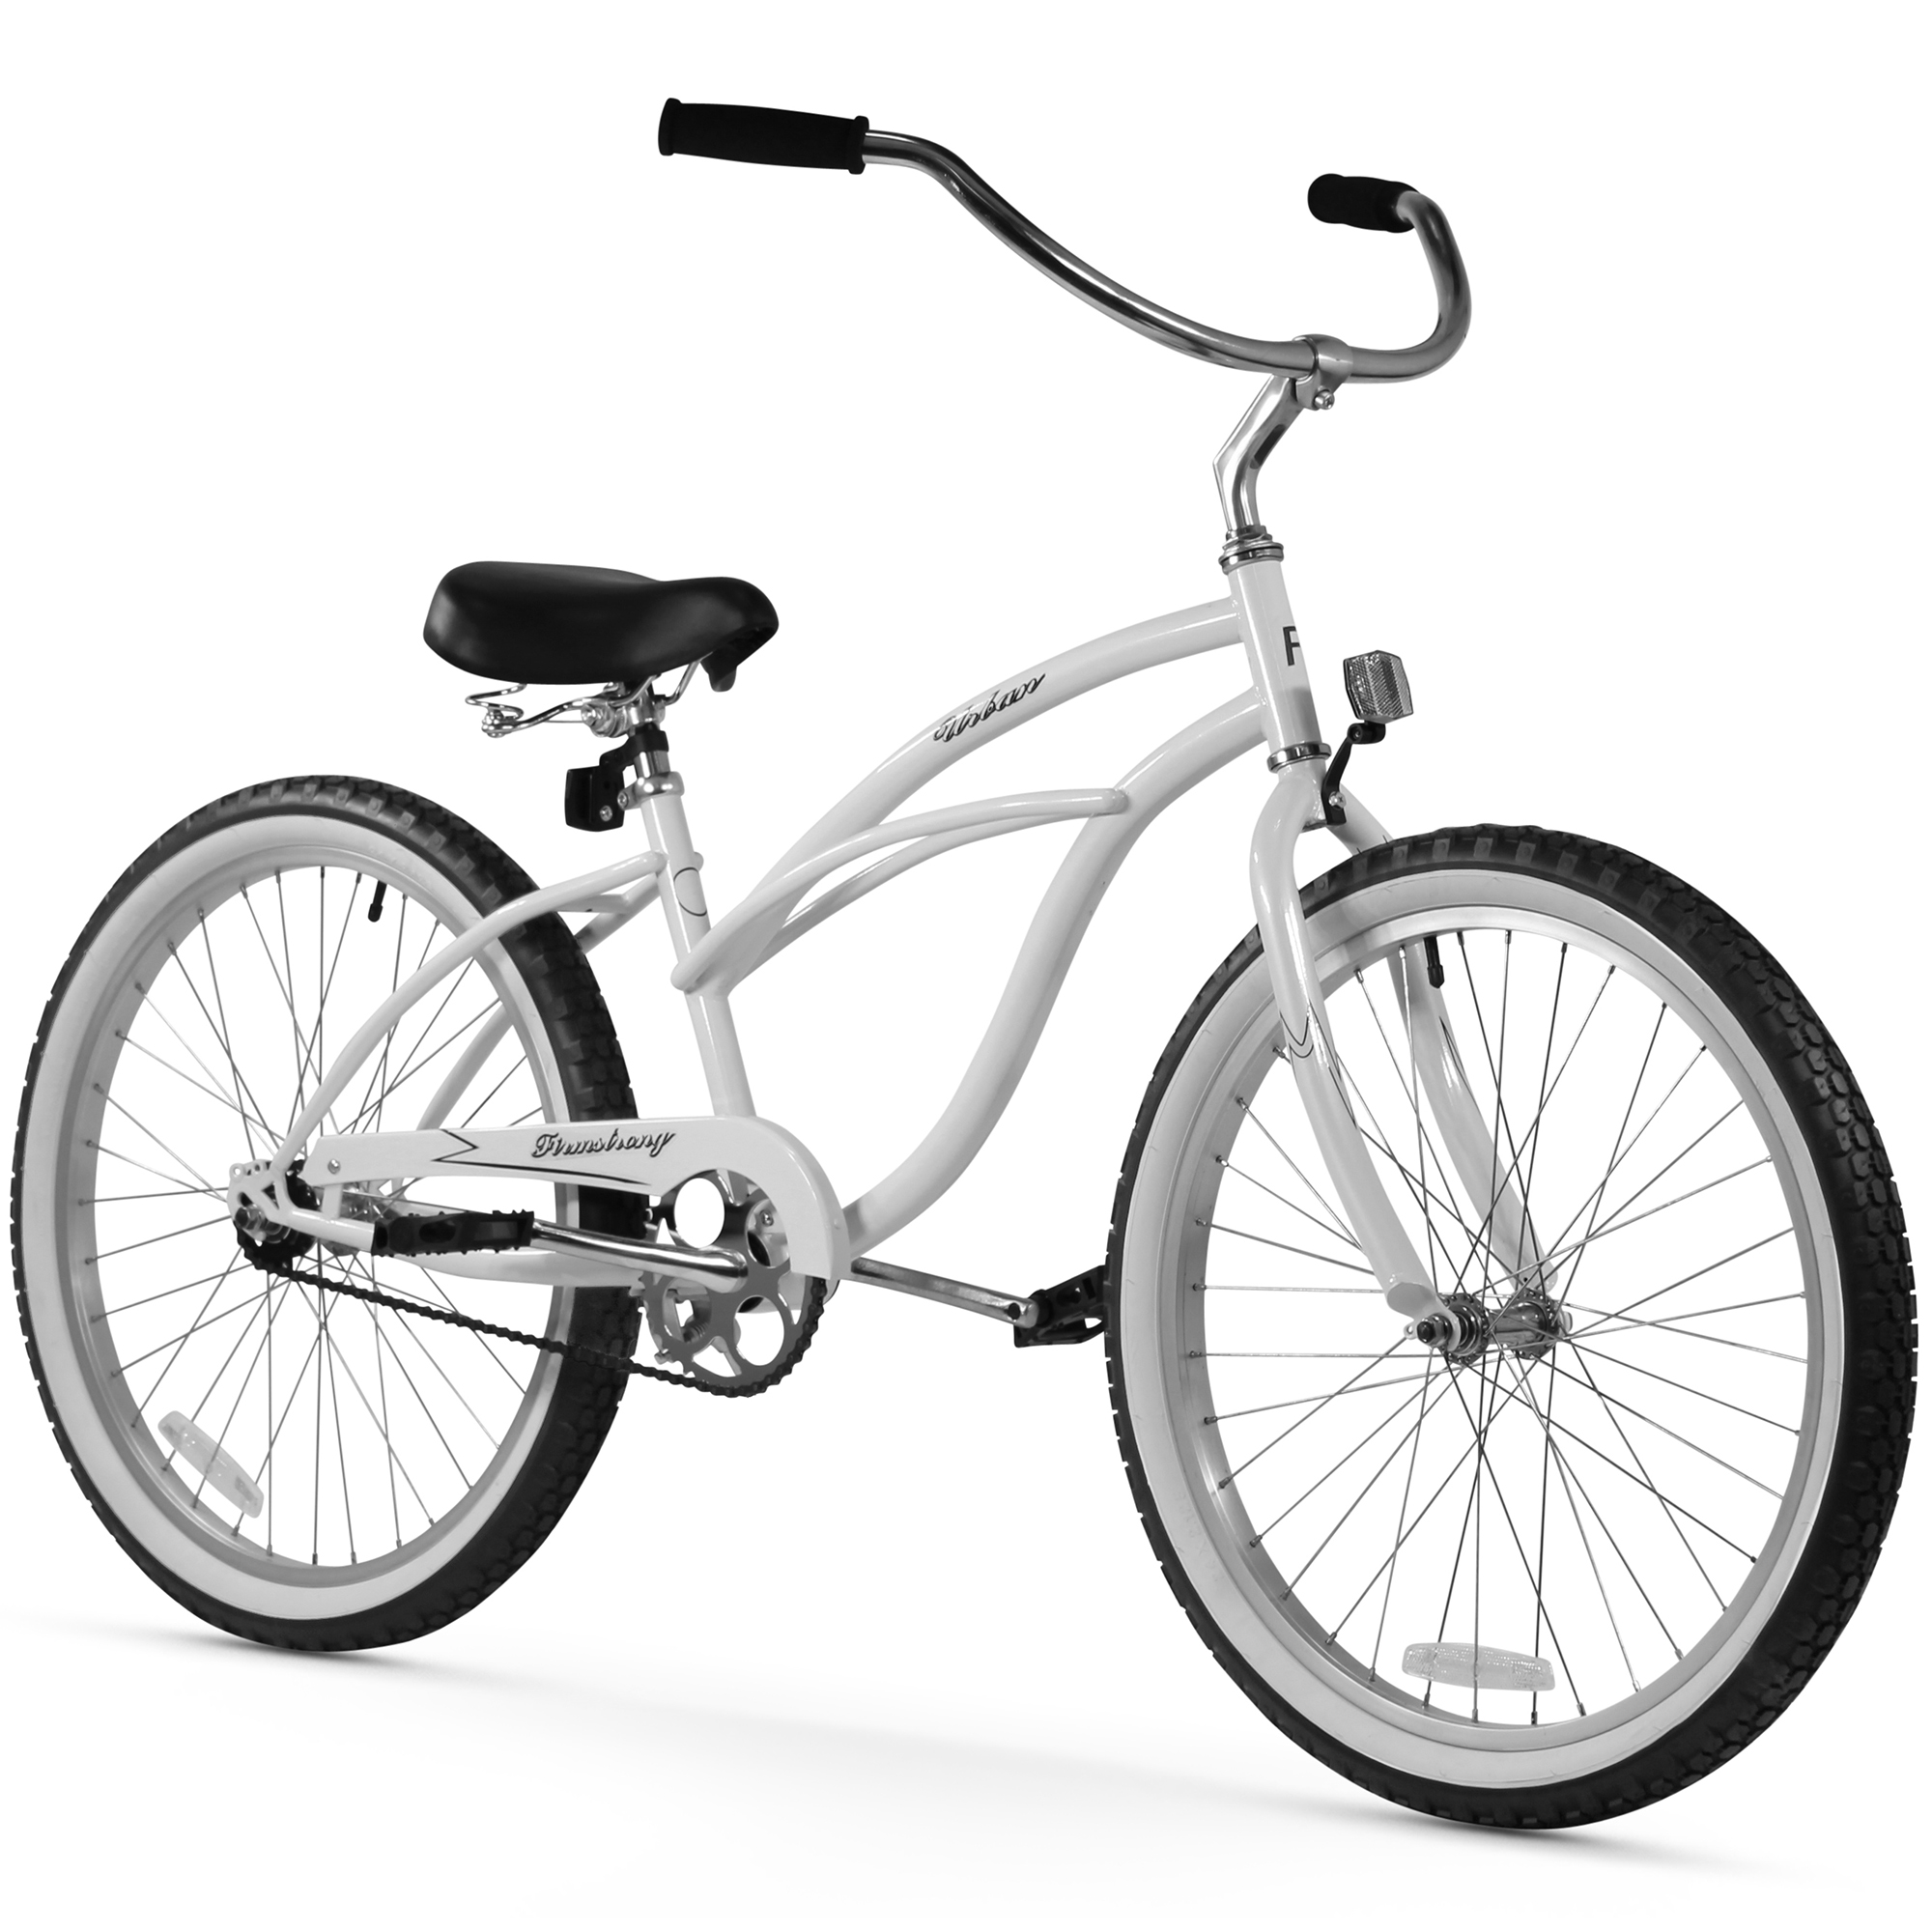 "Firmstrong 24"" Women's Urban Lady Beach Cruiser Bicycle, 1 and 3 Speed"